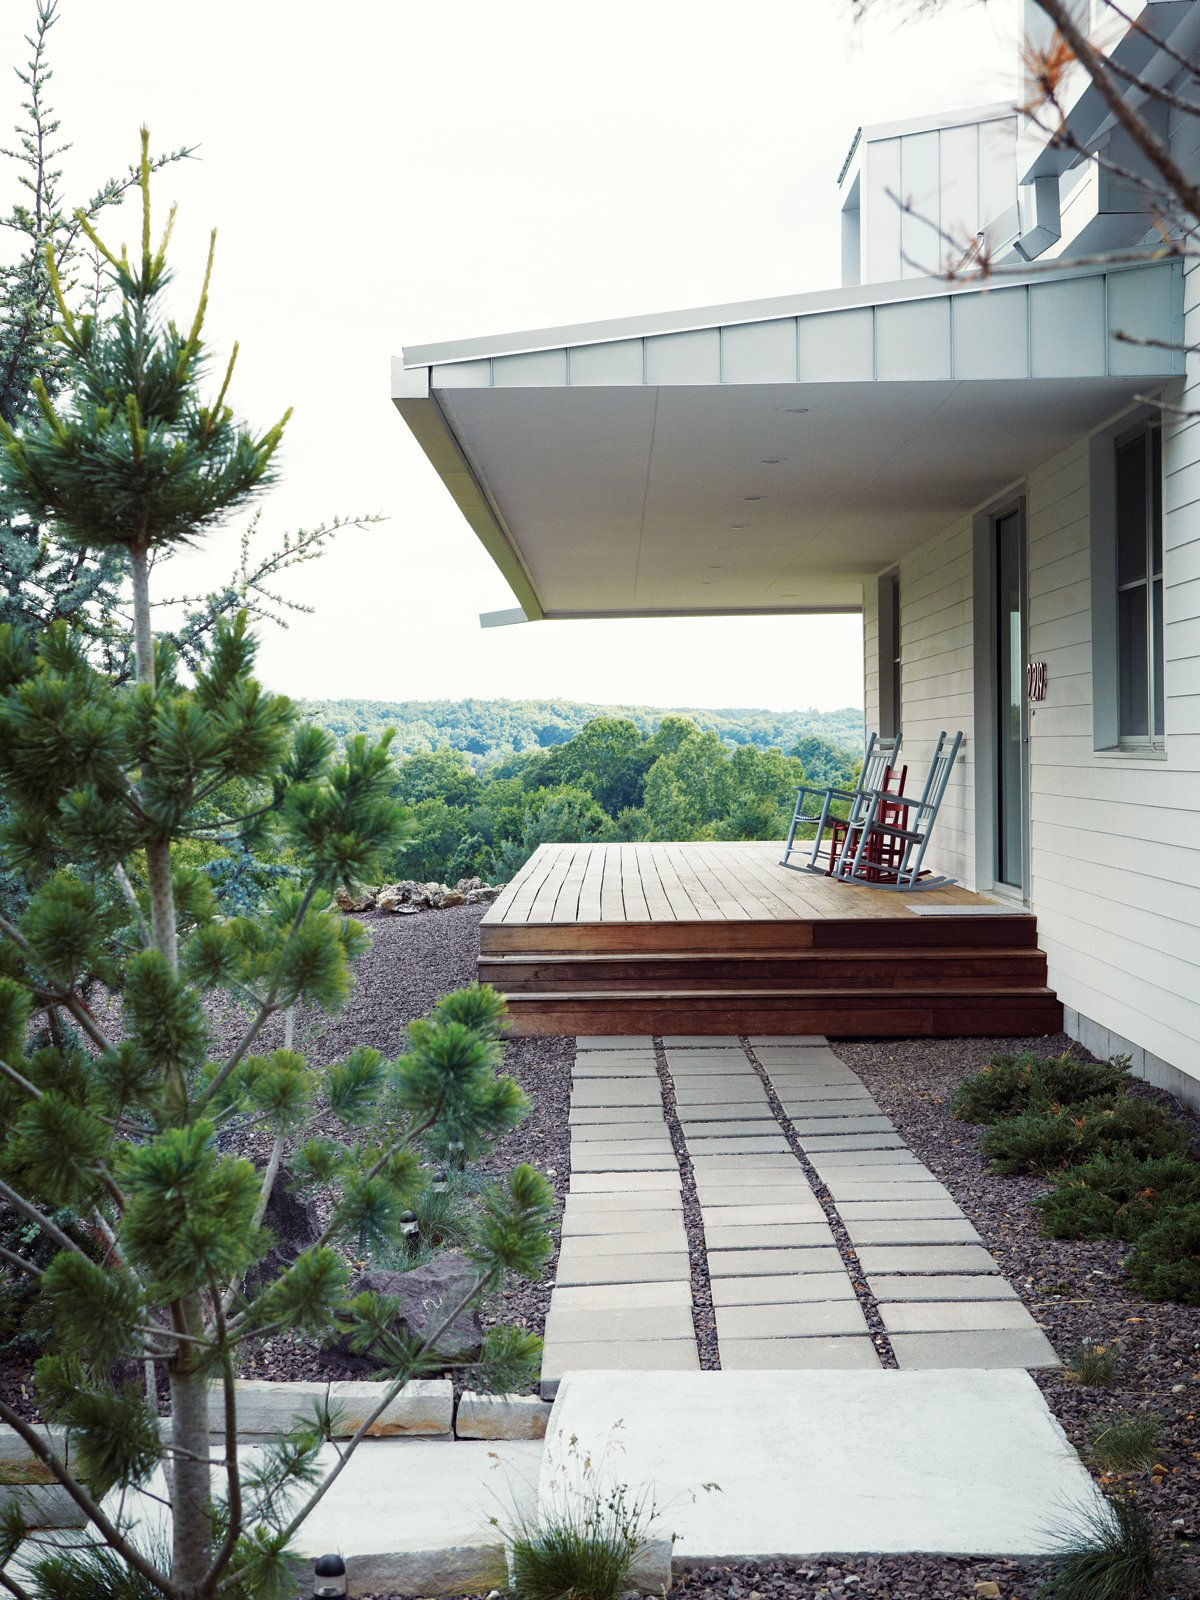 Outdoor, Pavers Patio, Porch, Deck, Wood Patio, Porch, Deck, Walkways, Trees, and Hardscapes MODERN TAKE ON A TRADITIONAL FARMHOUSE IN MISSOURI  Thanks to Matthew Hufft, their envelope-pushing architect and longtime friend, Hannah and Paul Catlett have a new home in southwestern Missouri that's a fresh, unconventional take on the traditional farmhouse. The homeowners call the house Porch House after it's majestic wraparound porch.  photos by: Joe Pugliese  Photo 1 of 2 in Ozark Original